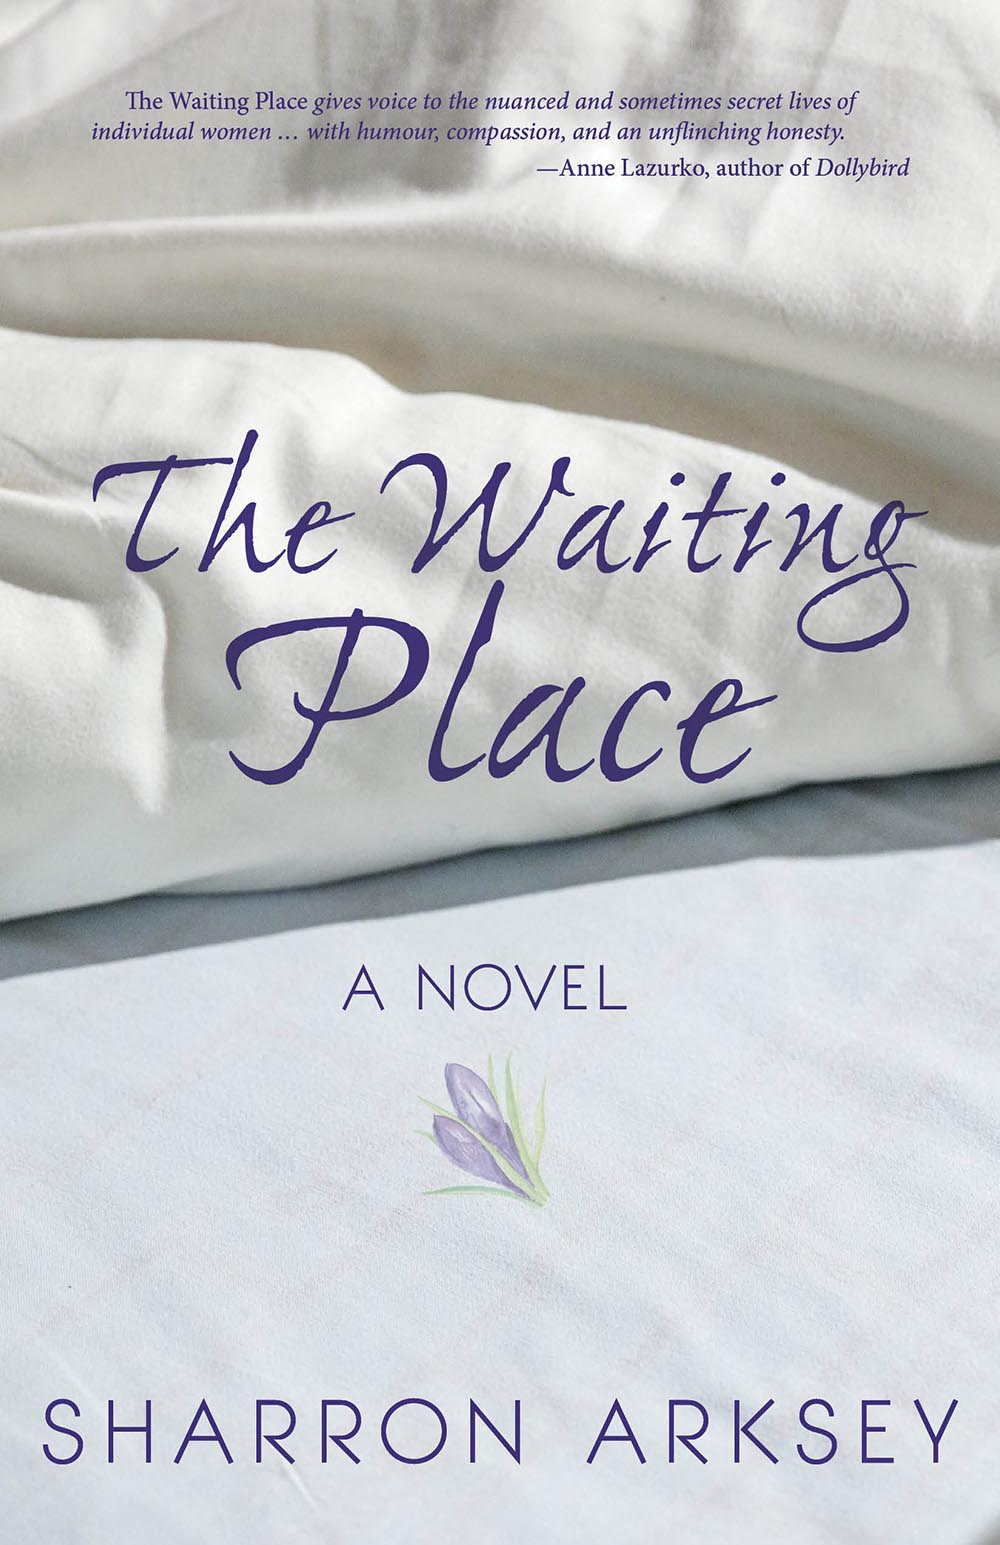 The Waiting Place by Sharron Arksey